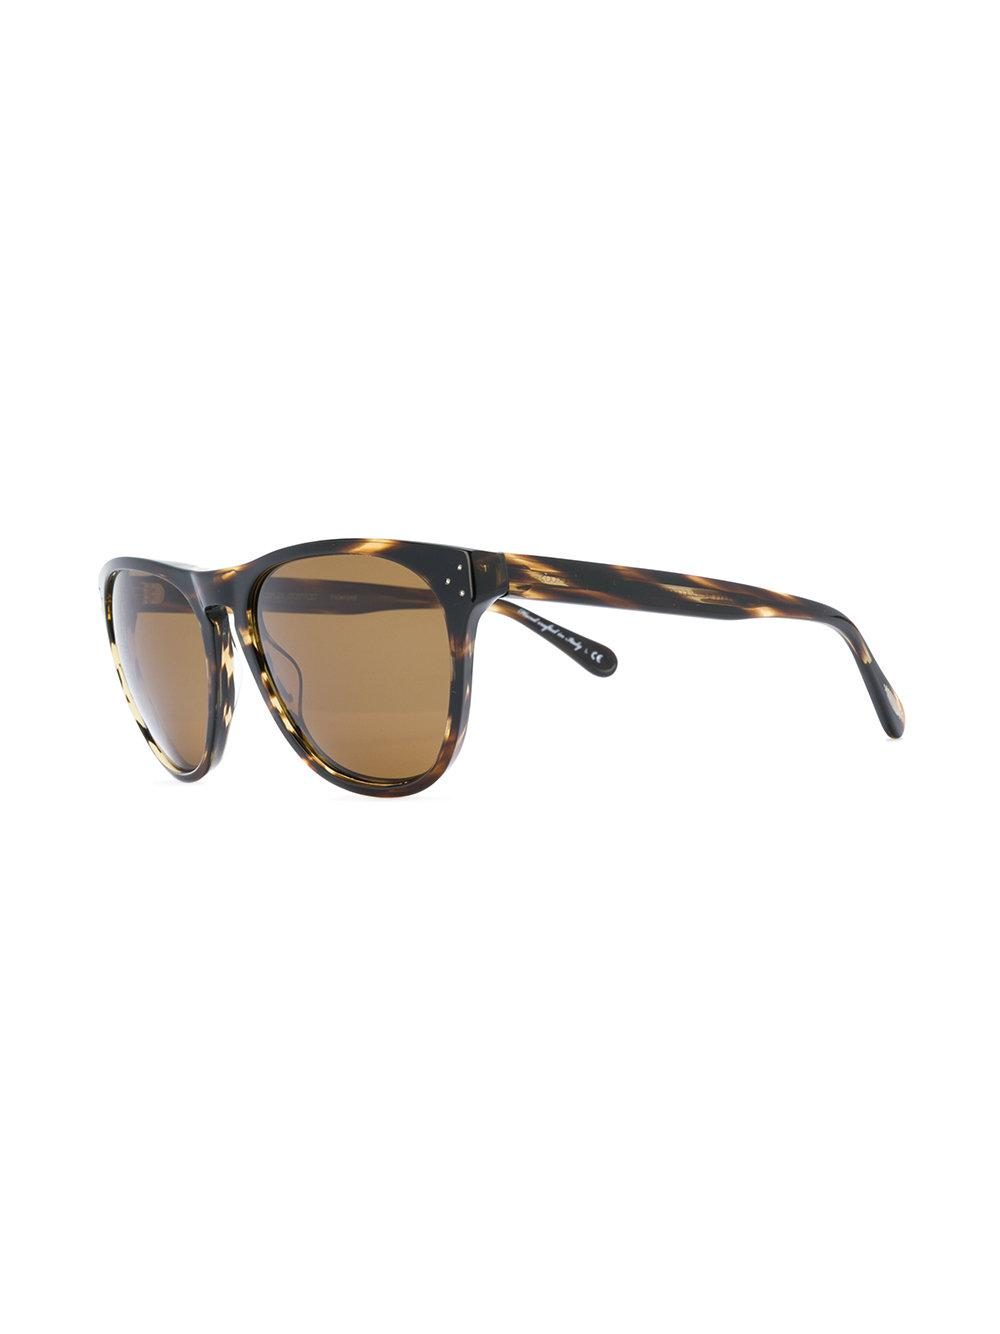 Oliver Peoples Daddy B Sunglasses in Brown